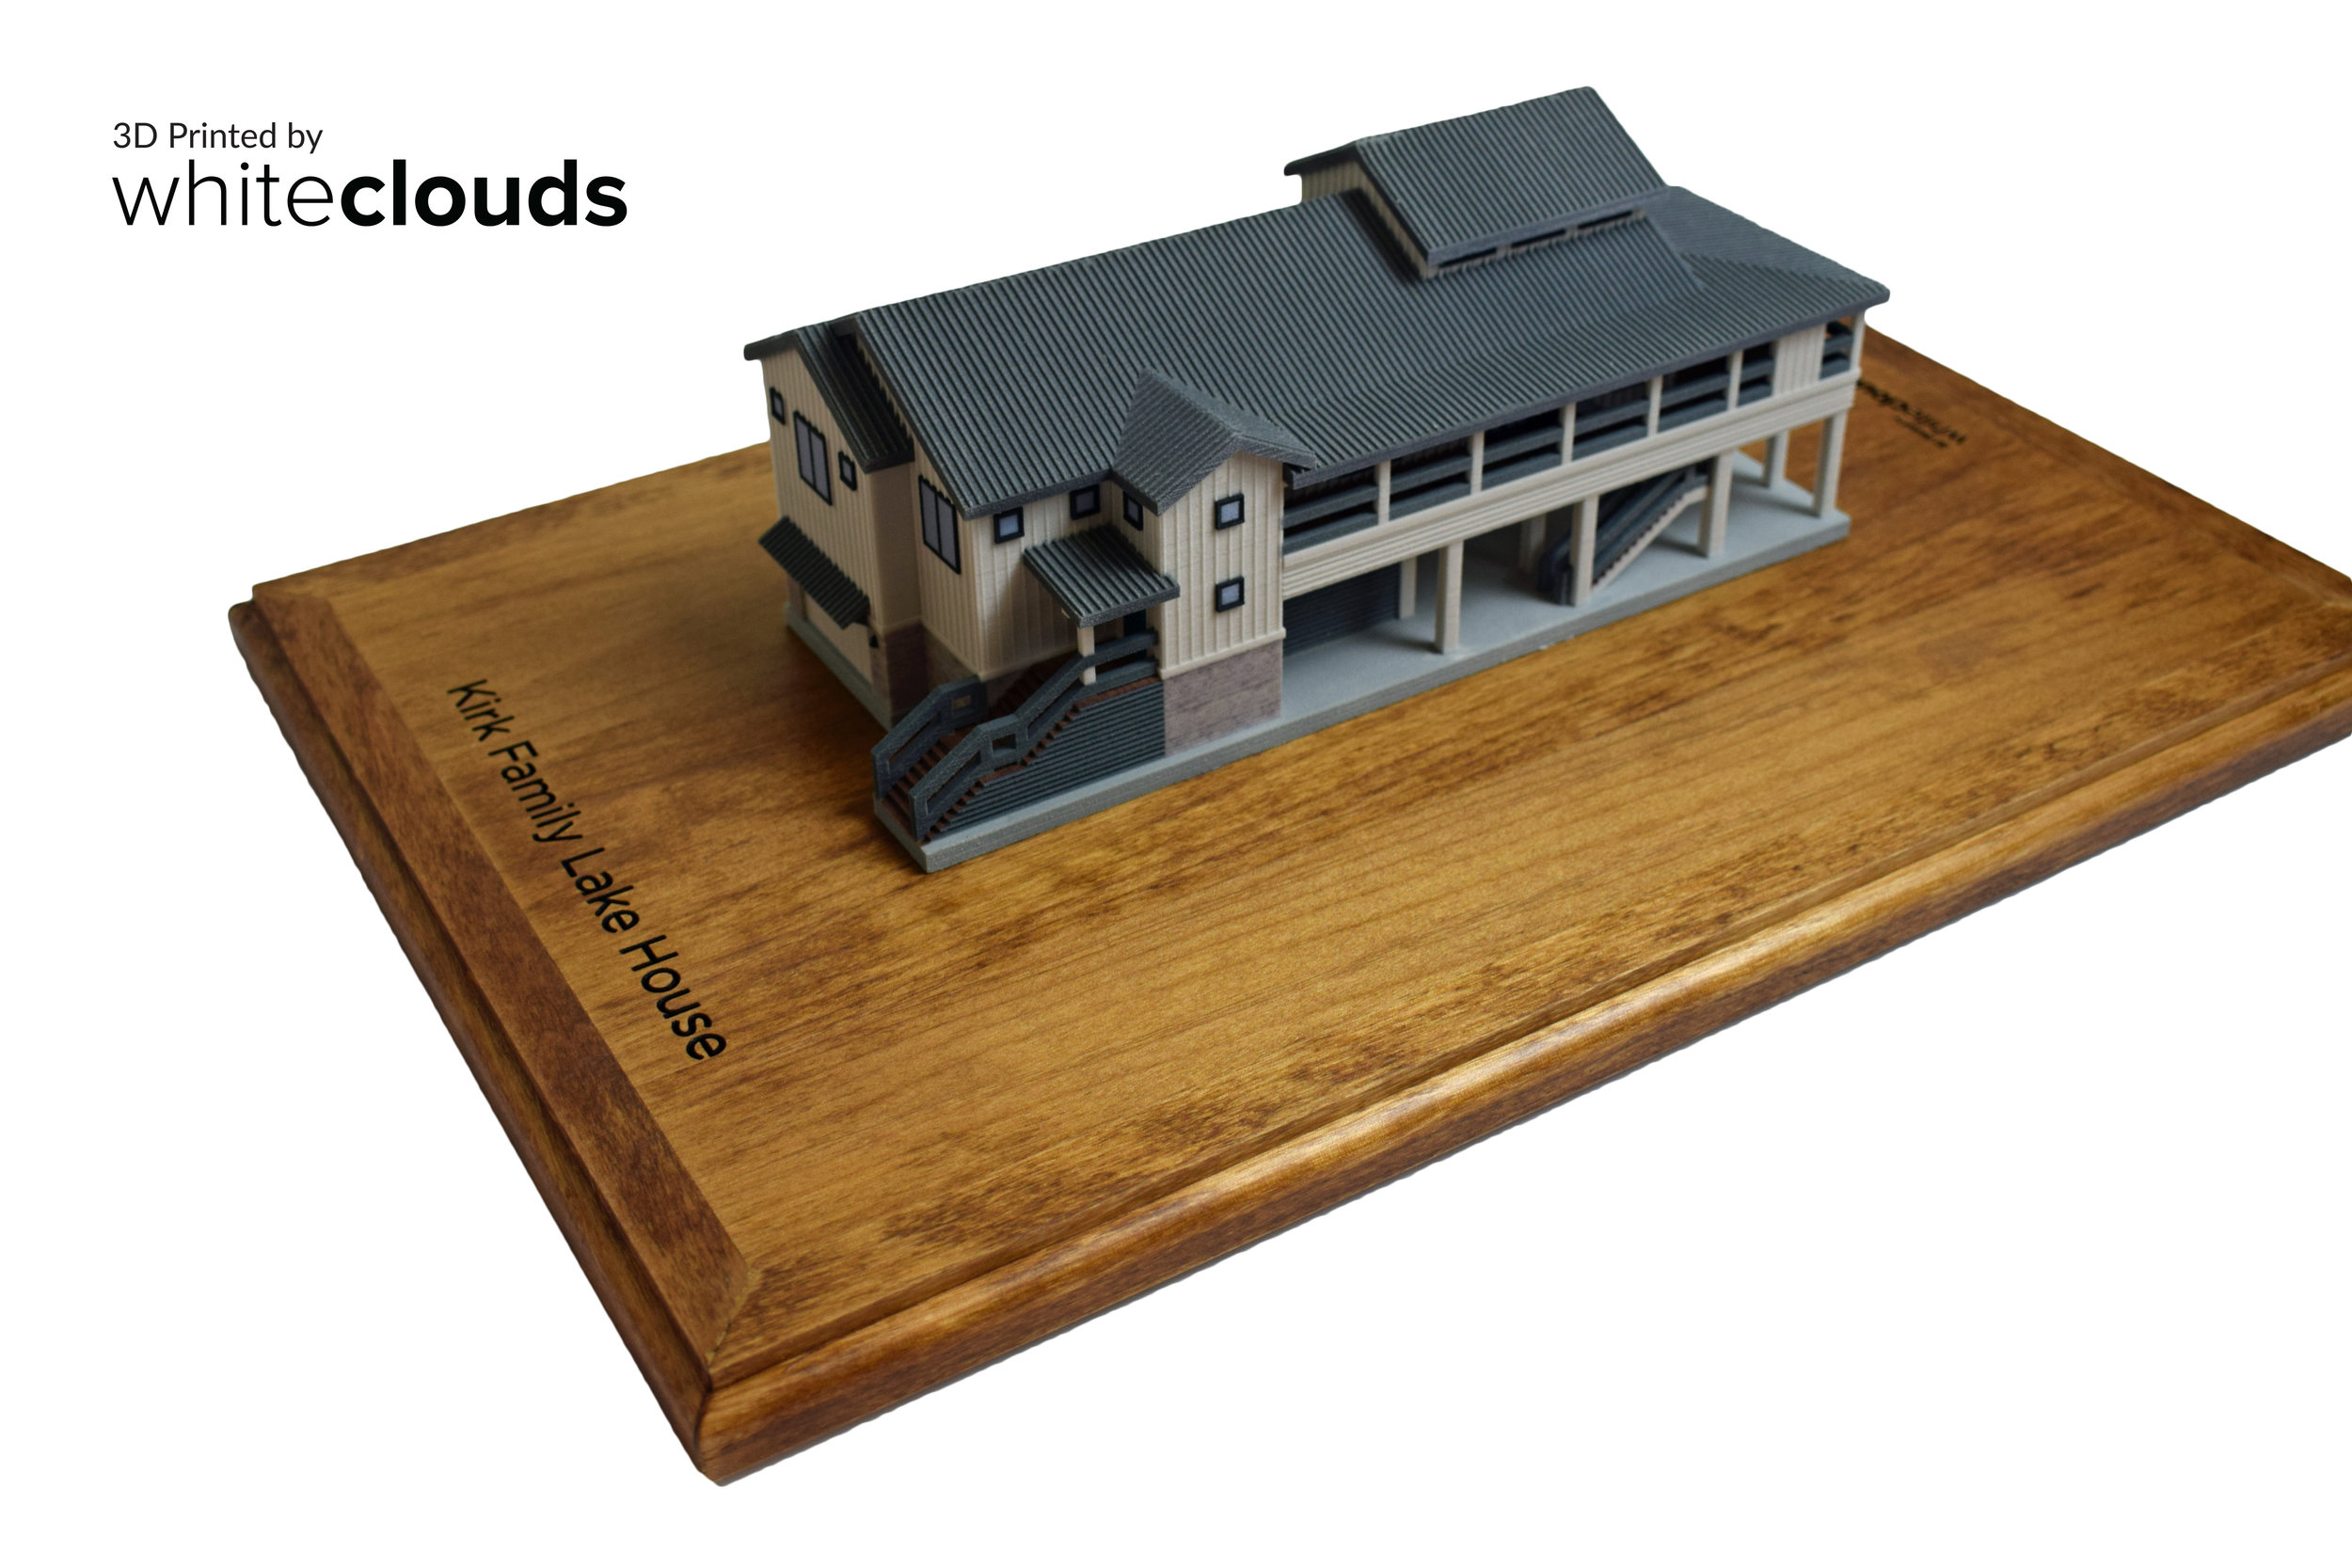 3D-Printed-WhiteClouds-Lake-House-Architecture-Kirk-Family-Lake-Home-Website-1.JPG